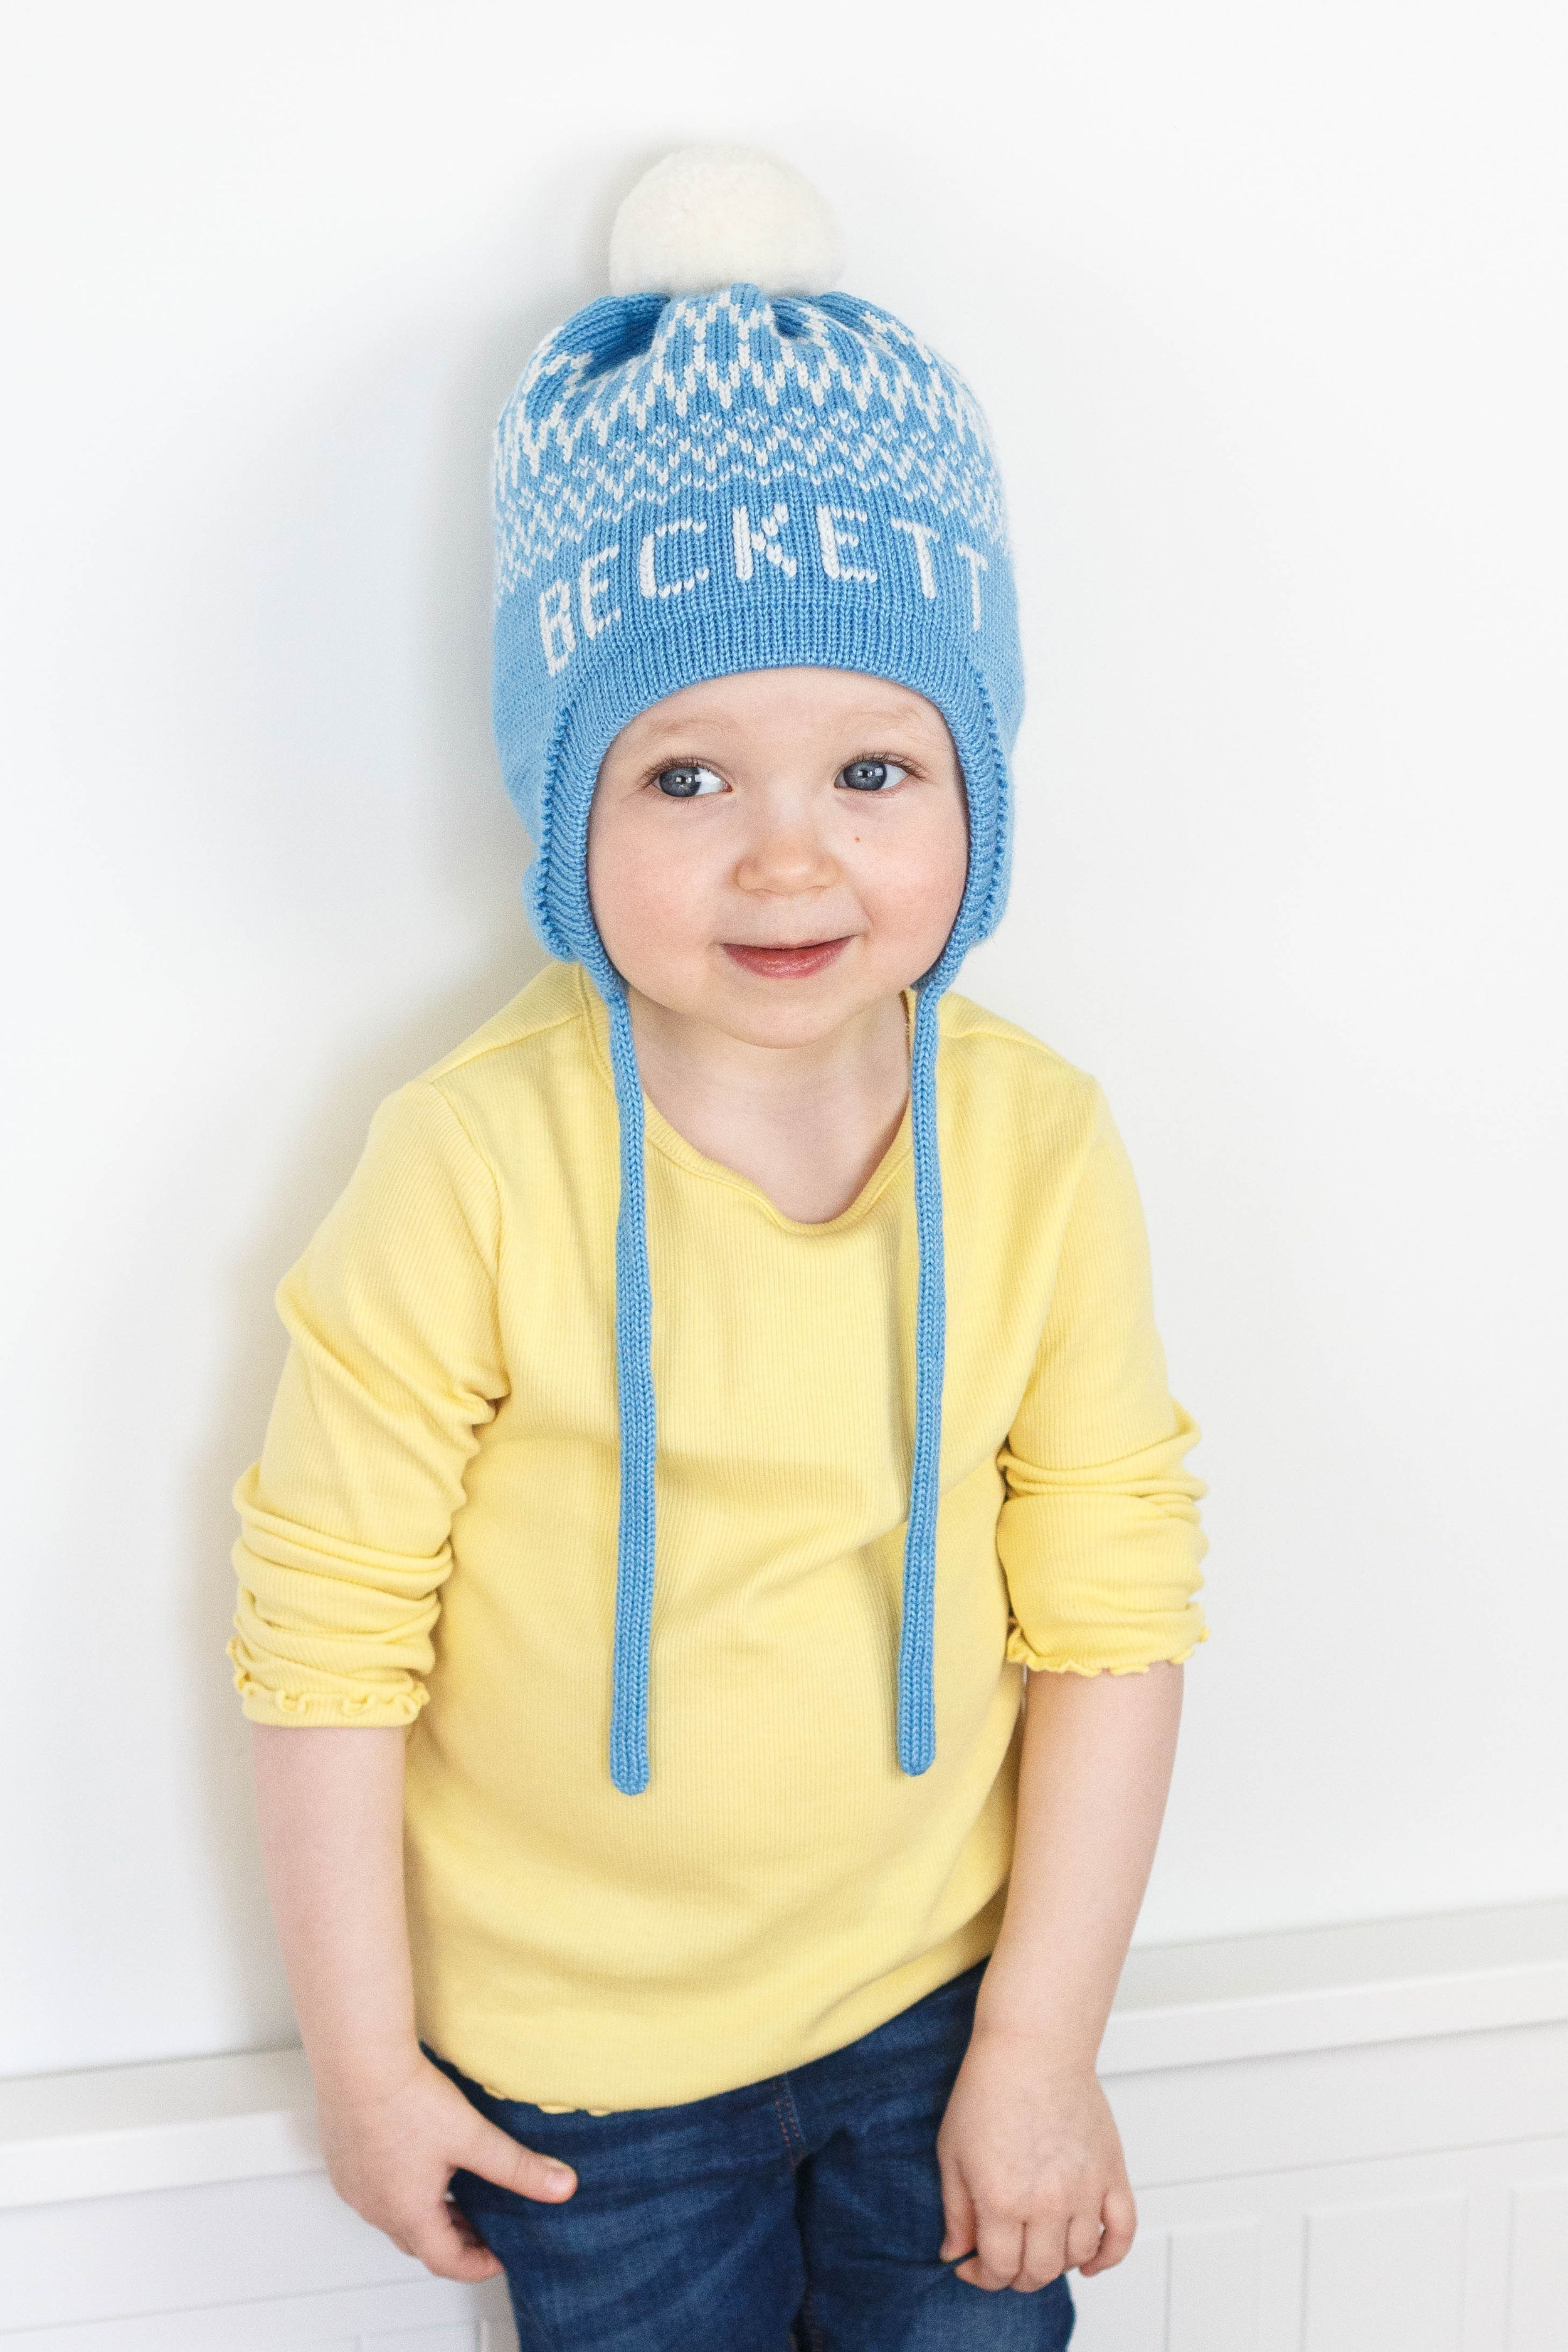 Personalized Ear Flap Beanie With Pom Pom For Boys And Girls Custom Toddler Kids Knit Winter Hat With Name Ear Flap Hats Knitted Hats Kids Kids Winter Hats